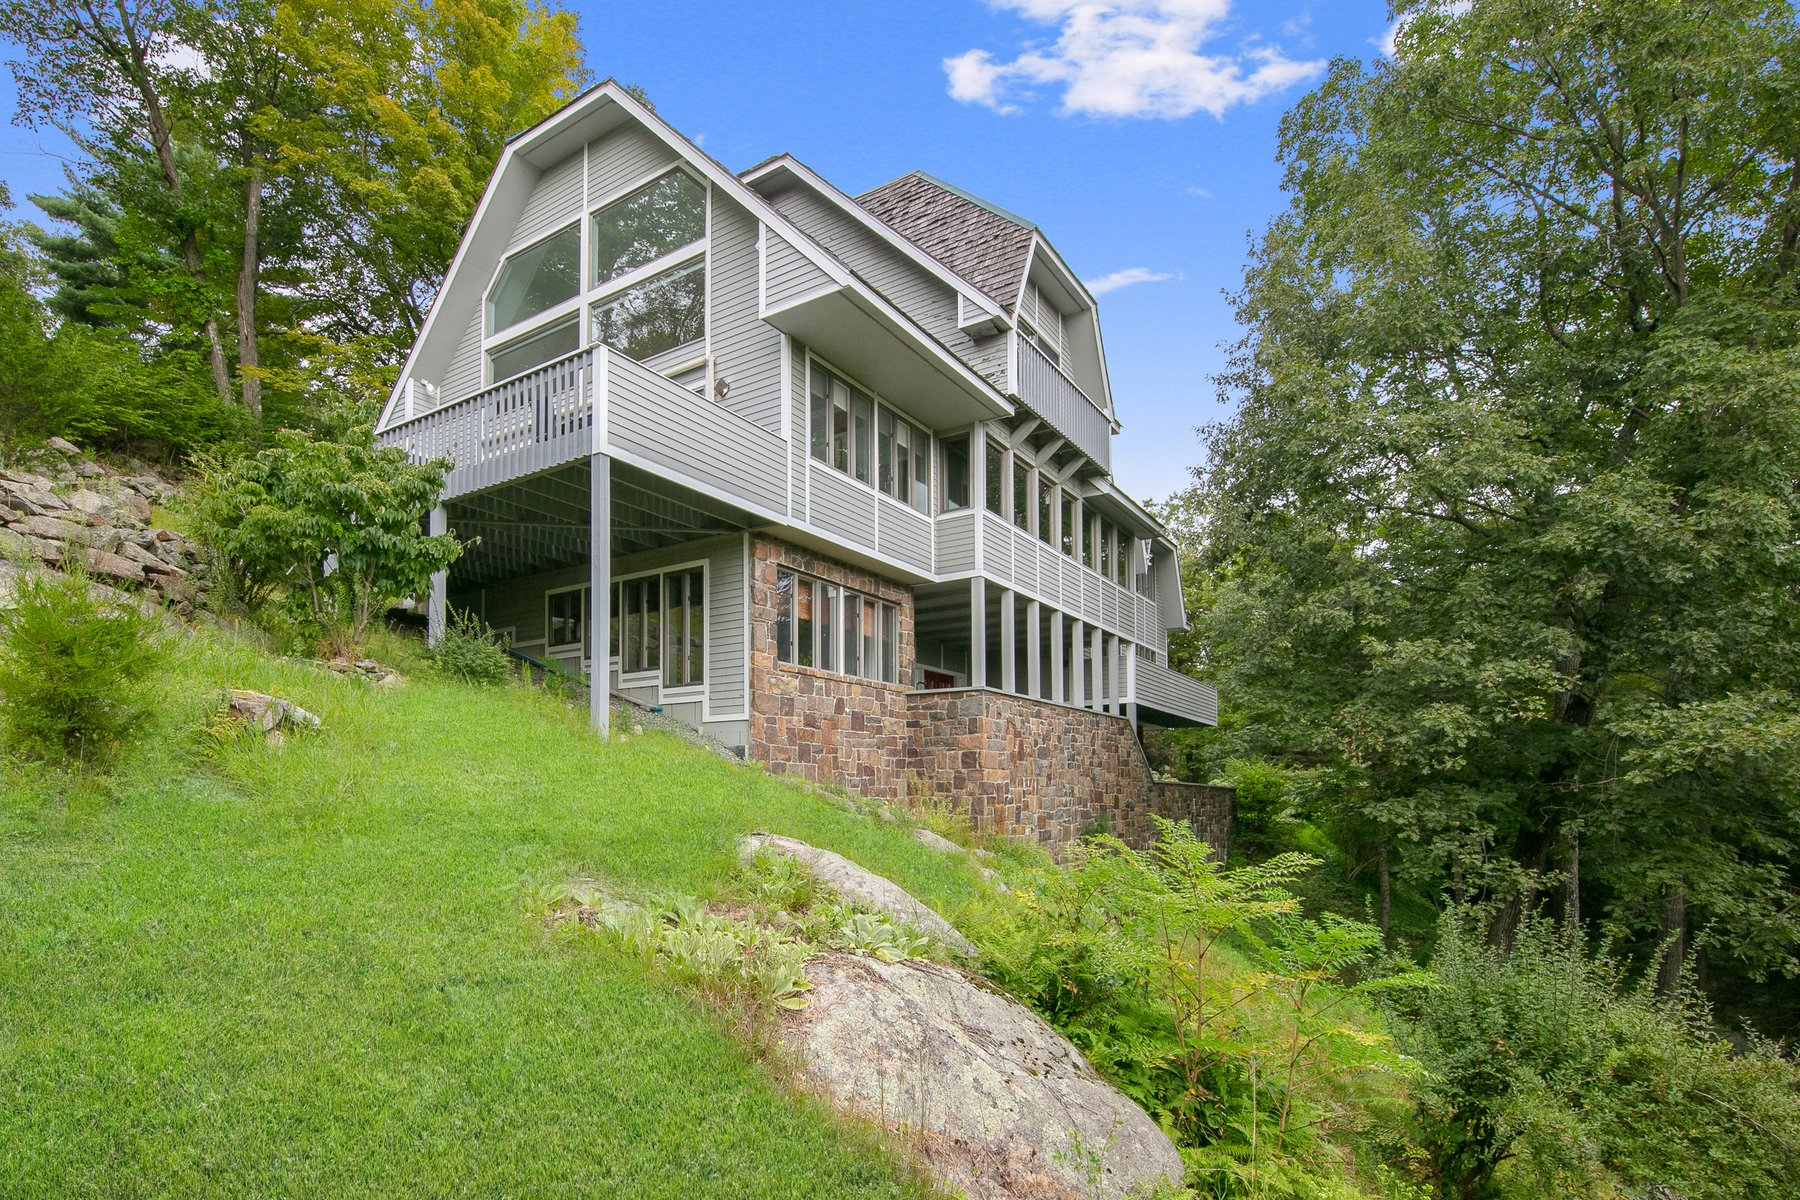 Single Family Homes for Sale at Mountaintop Masterpiece 44 Ontio Road Tuxedo Park, New York 10987 United States